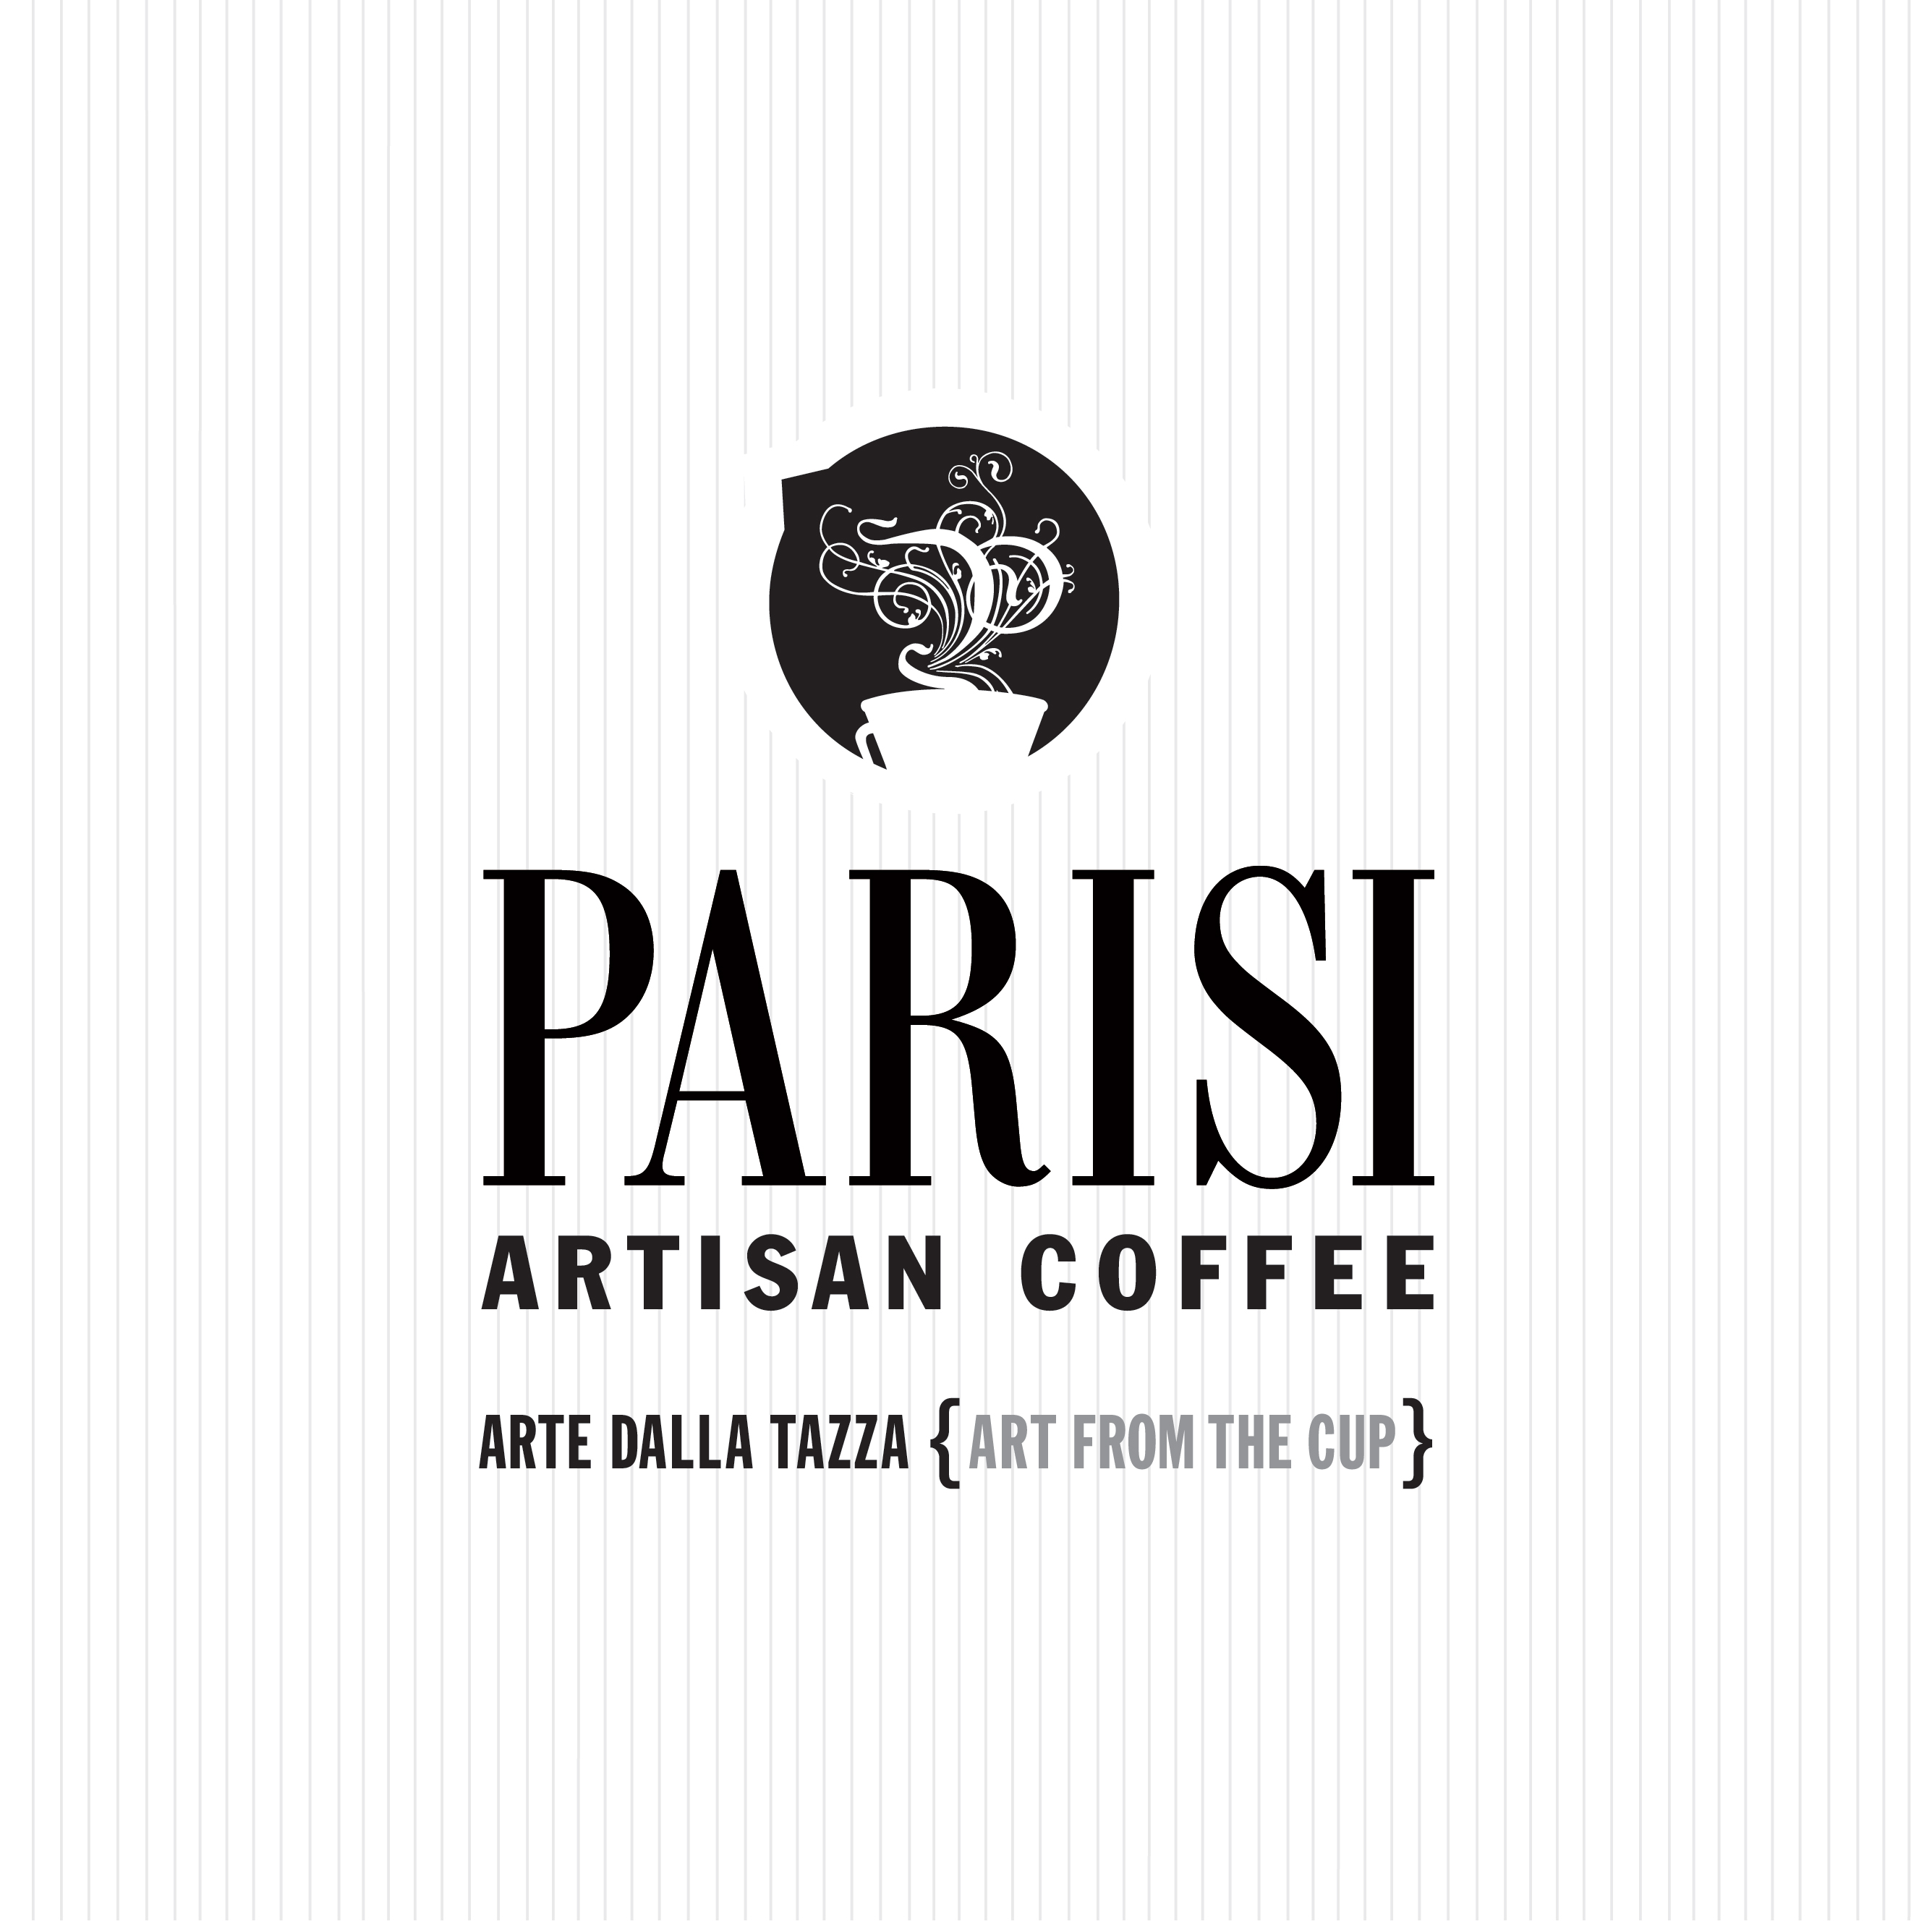 Sulawesi Tana Toraja from Parisi Artisan Coffee